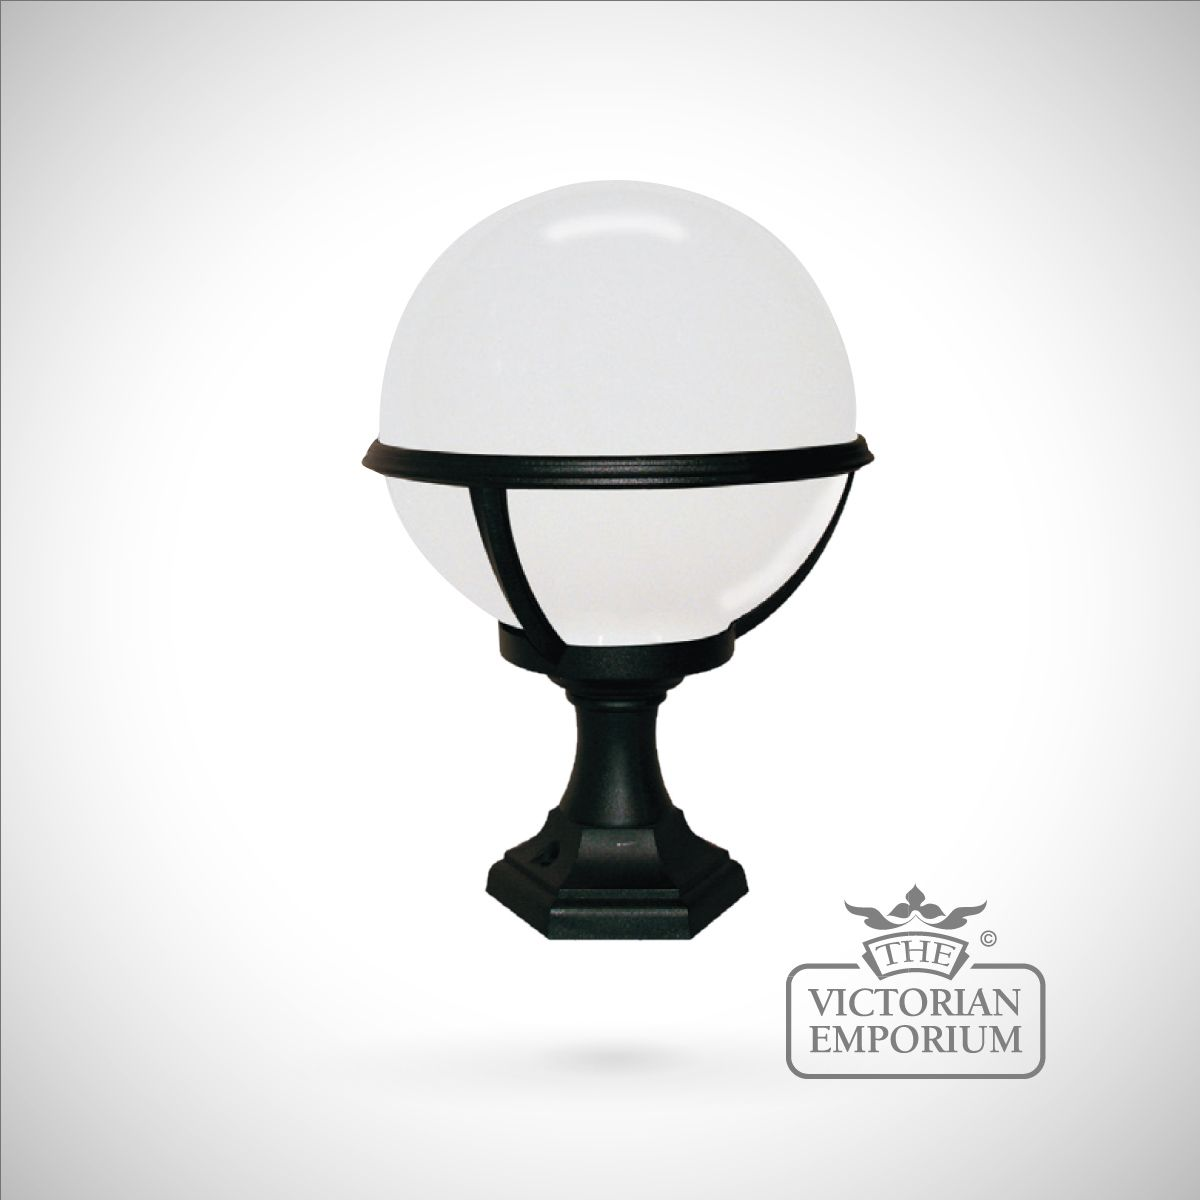 Alex Pedestal Light: Globe Pedestal/porch Lantern